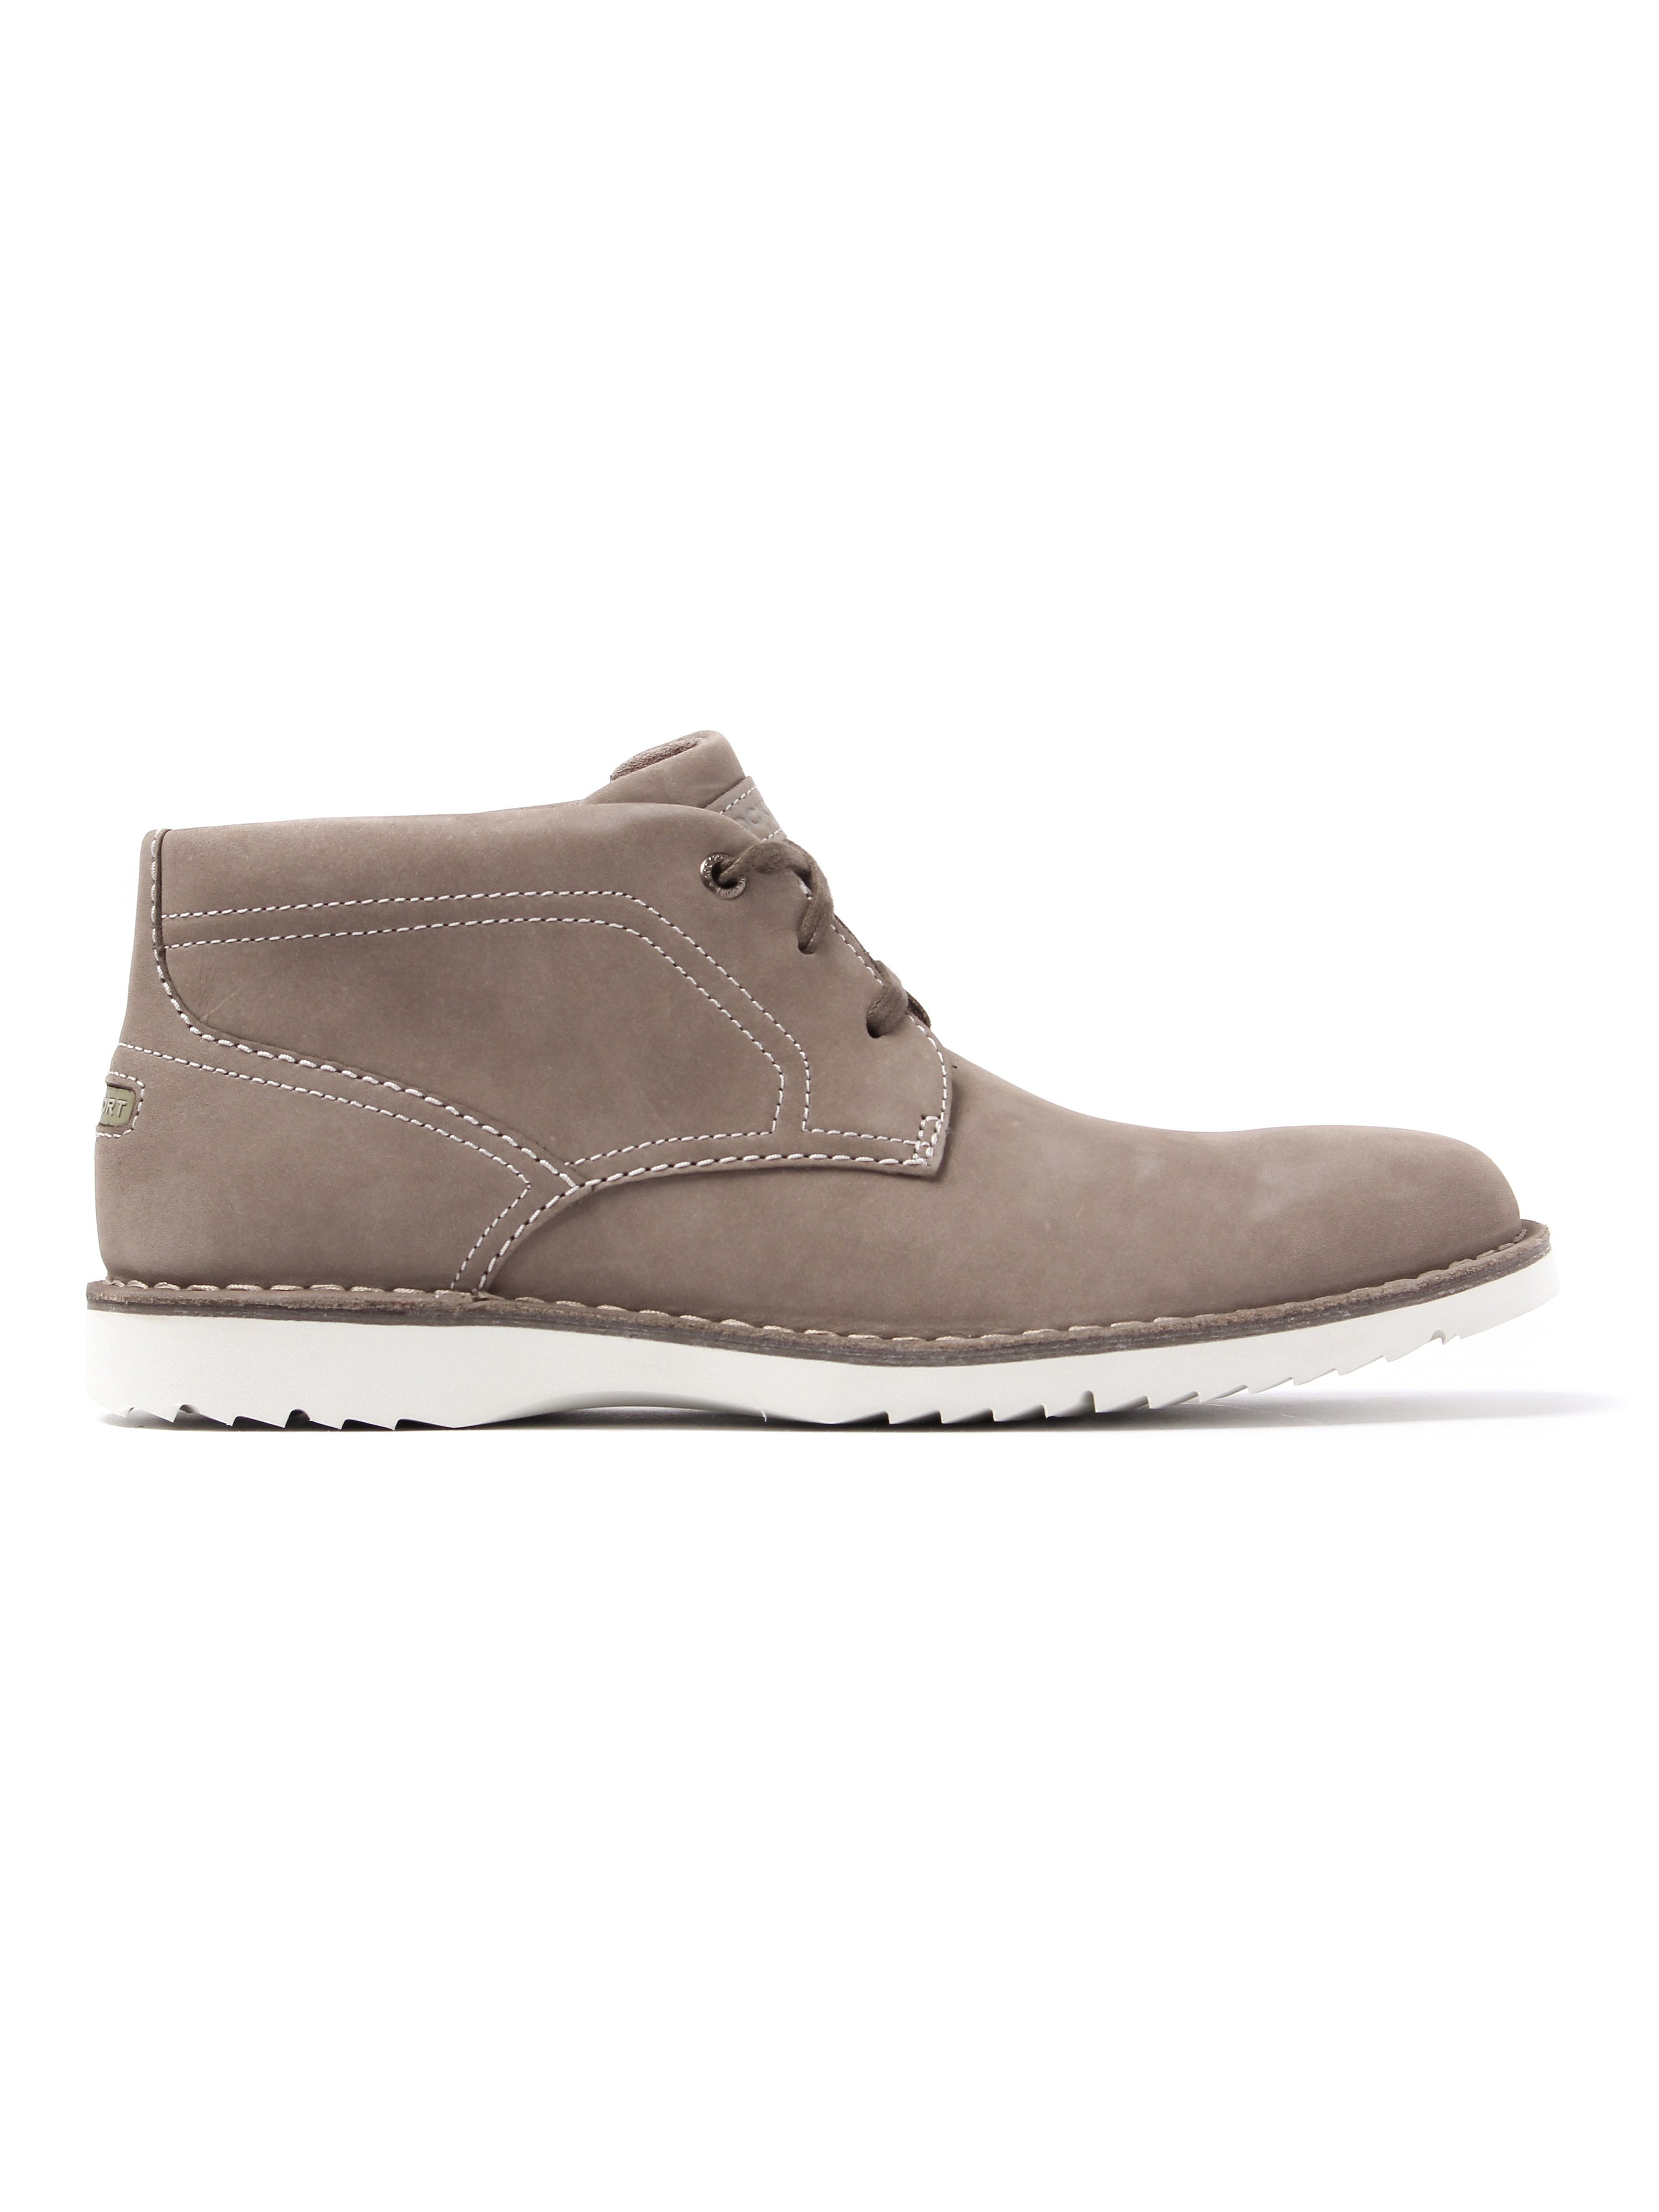 Rockport Men's Cabot Suede Chukka Boots - Tan